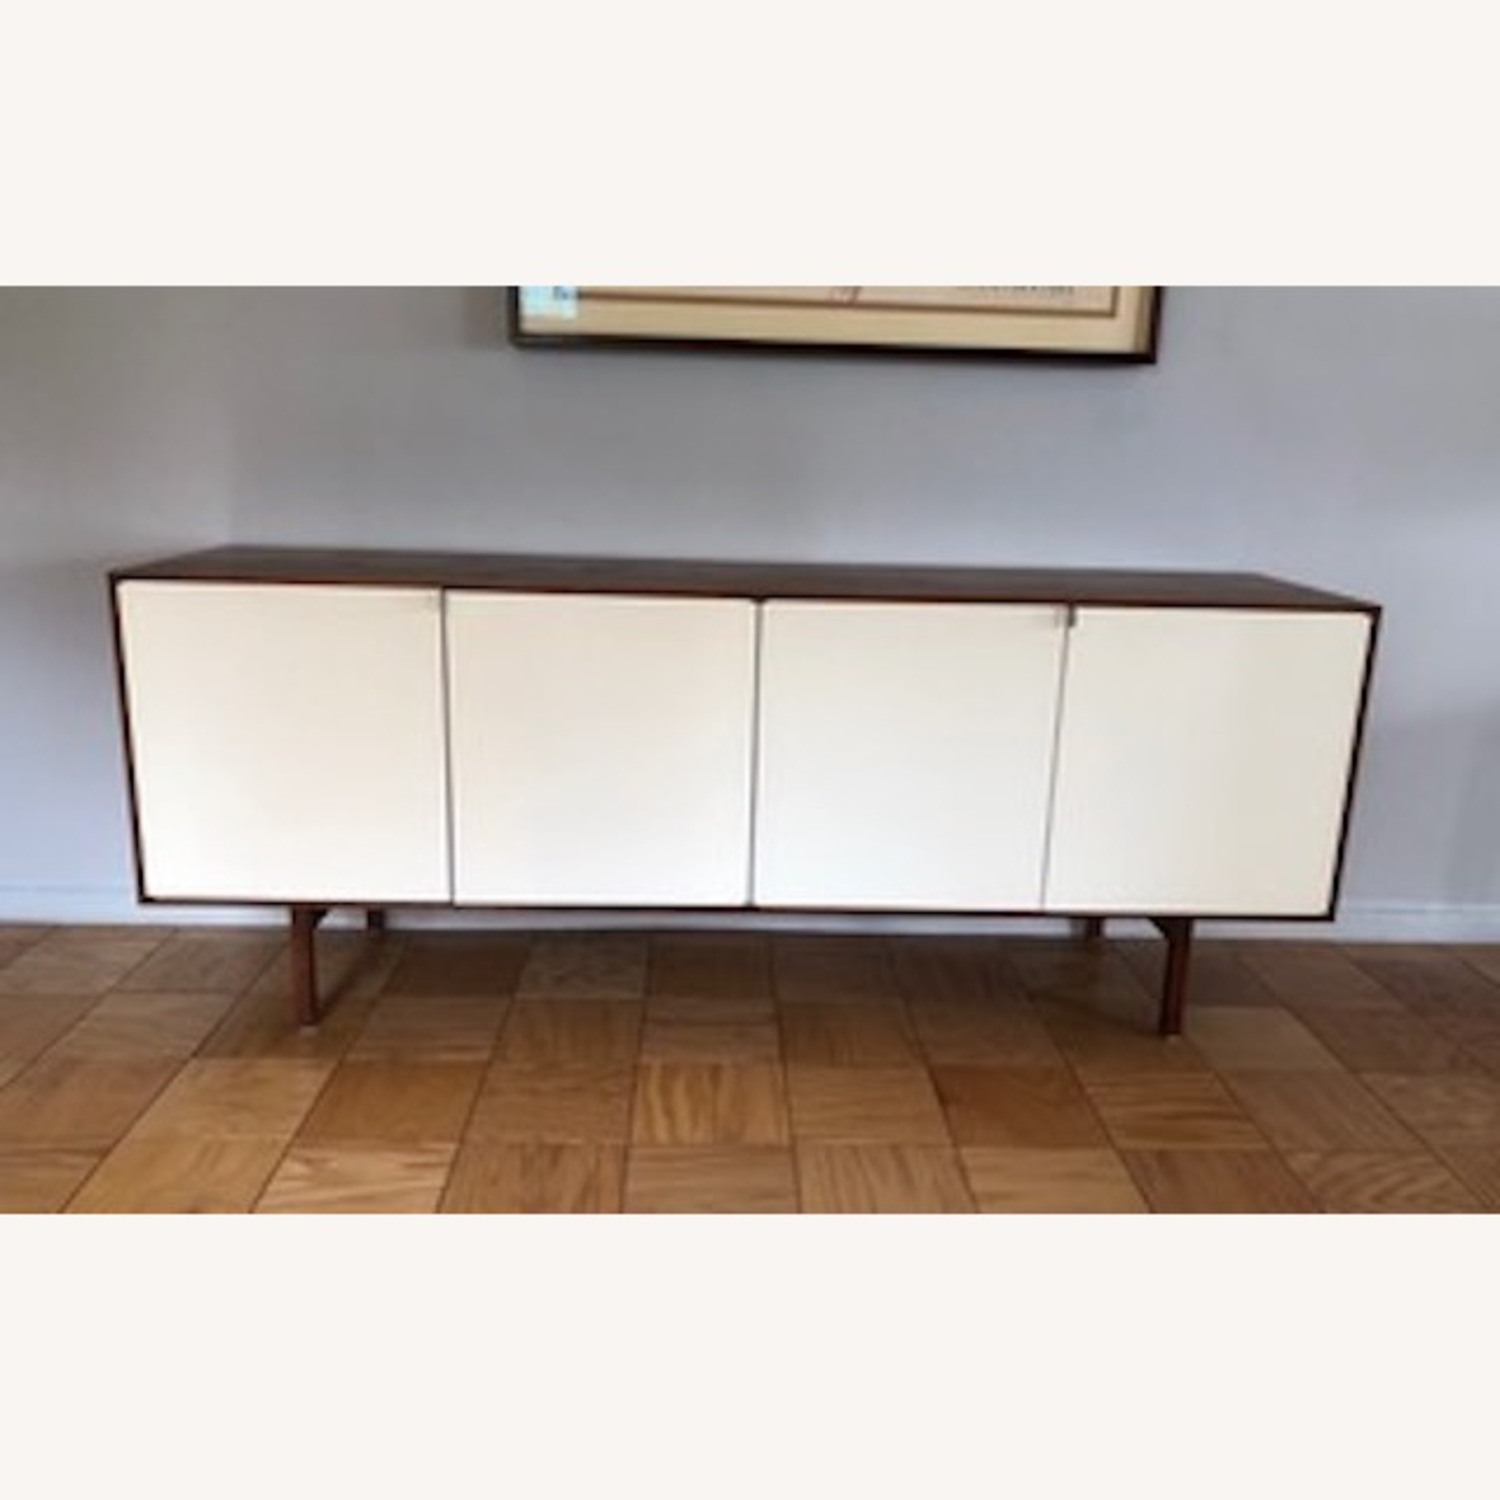 Vintage Florence Knoll Mid-Century Credenza - image-1